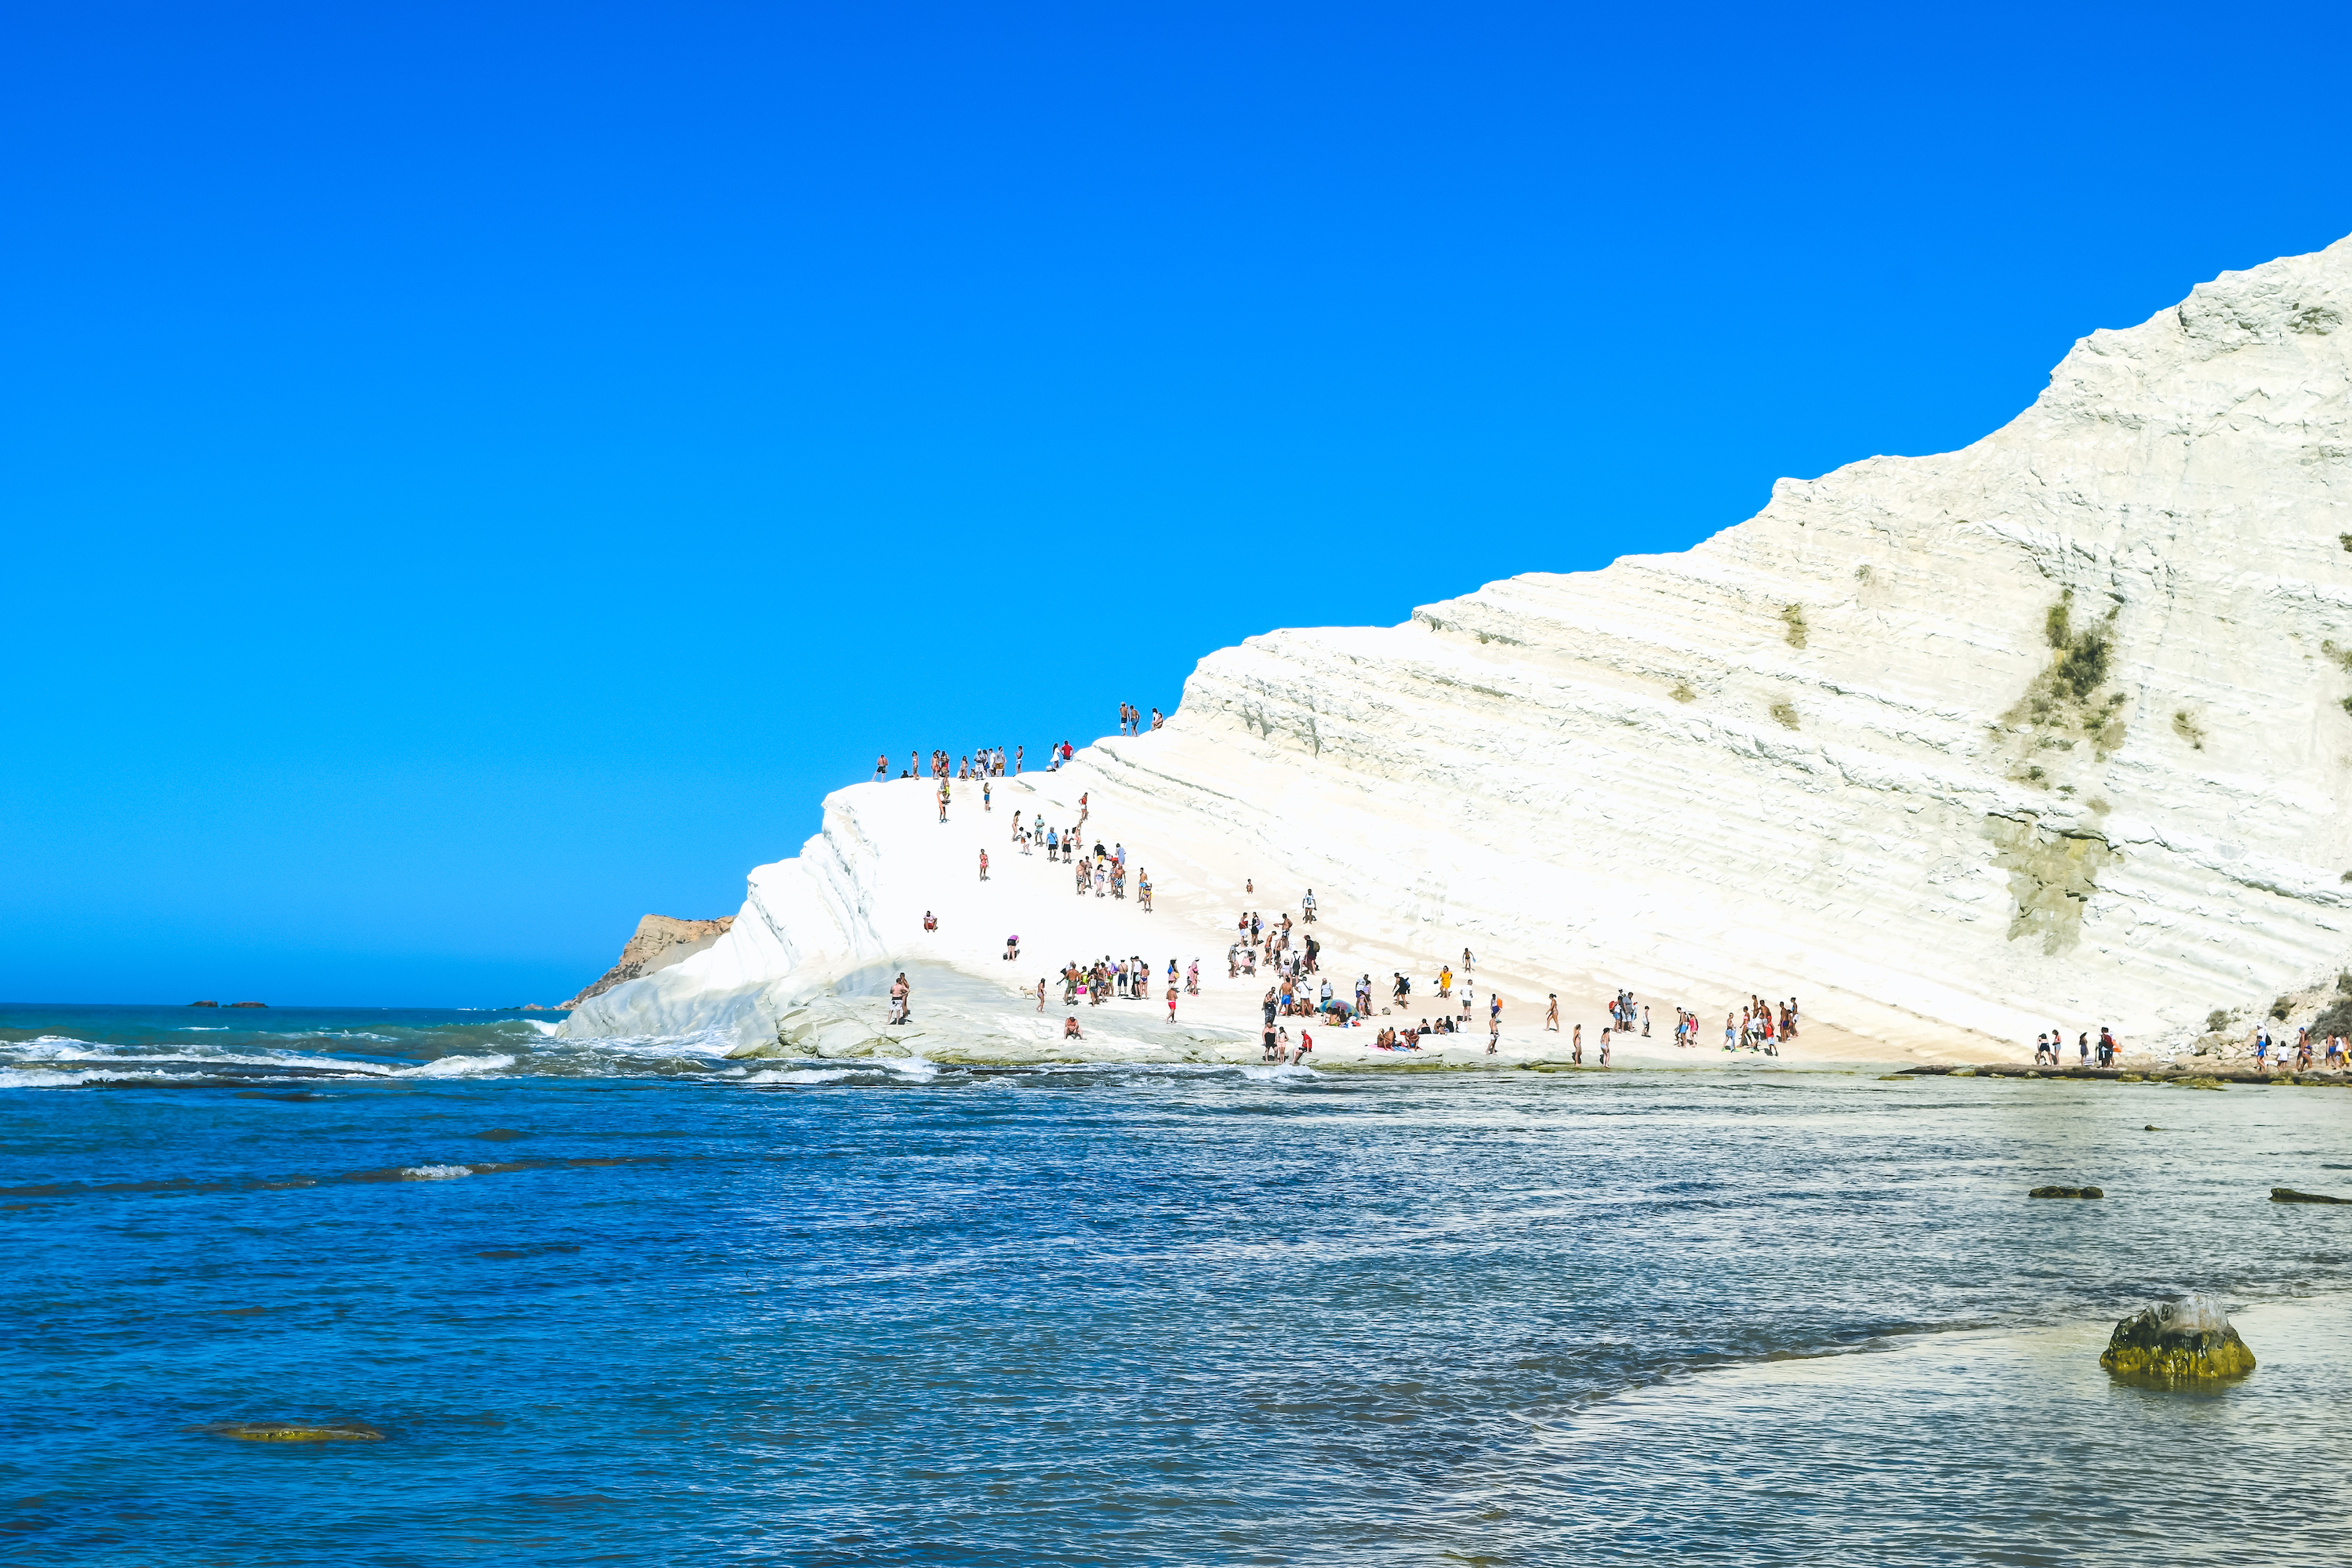 Travel guide to sicily scala dei turchi agrigento what to do see italy best time of year-2